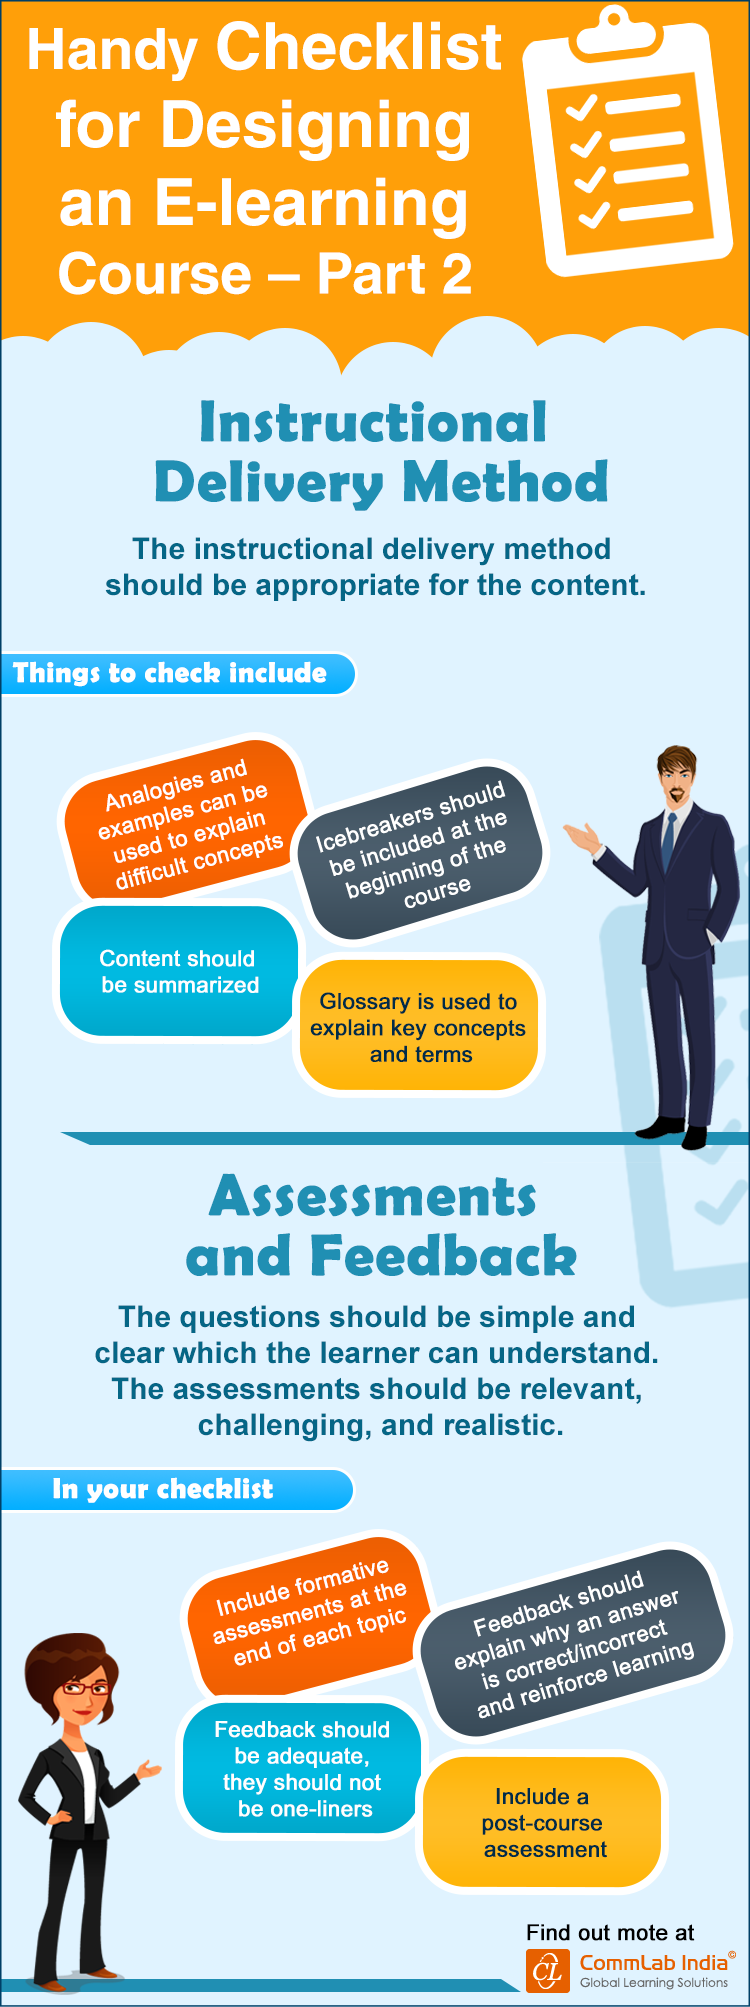 A Handy Checklist for Designing an E-learning Course - Part 2 [Infographic]